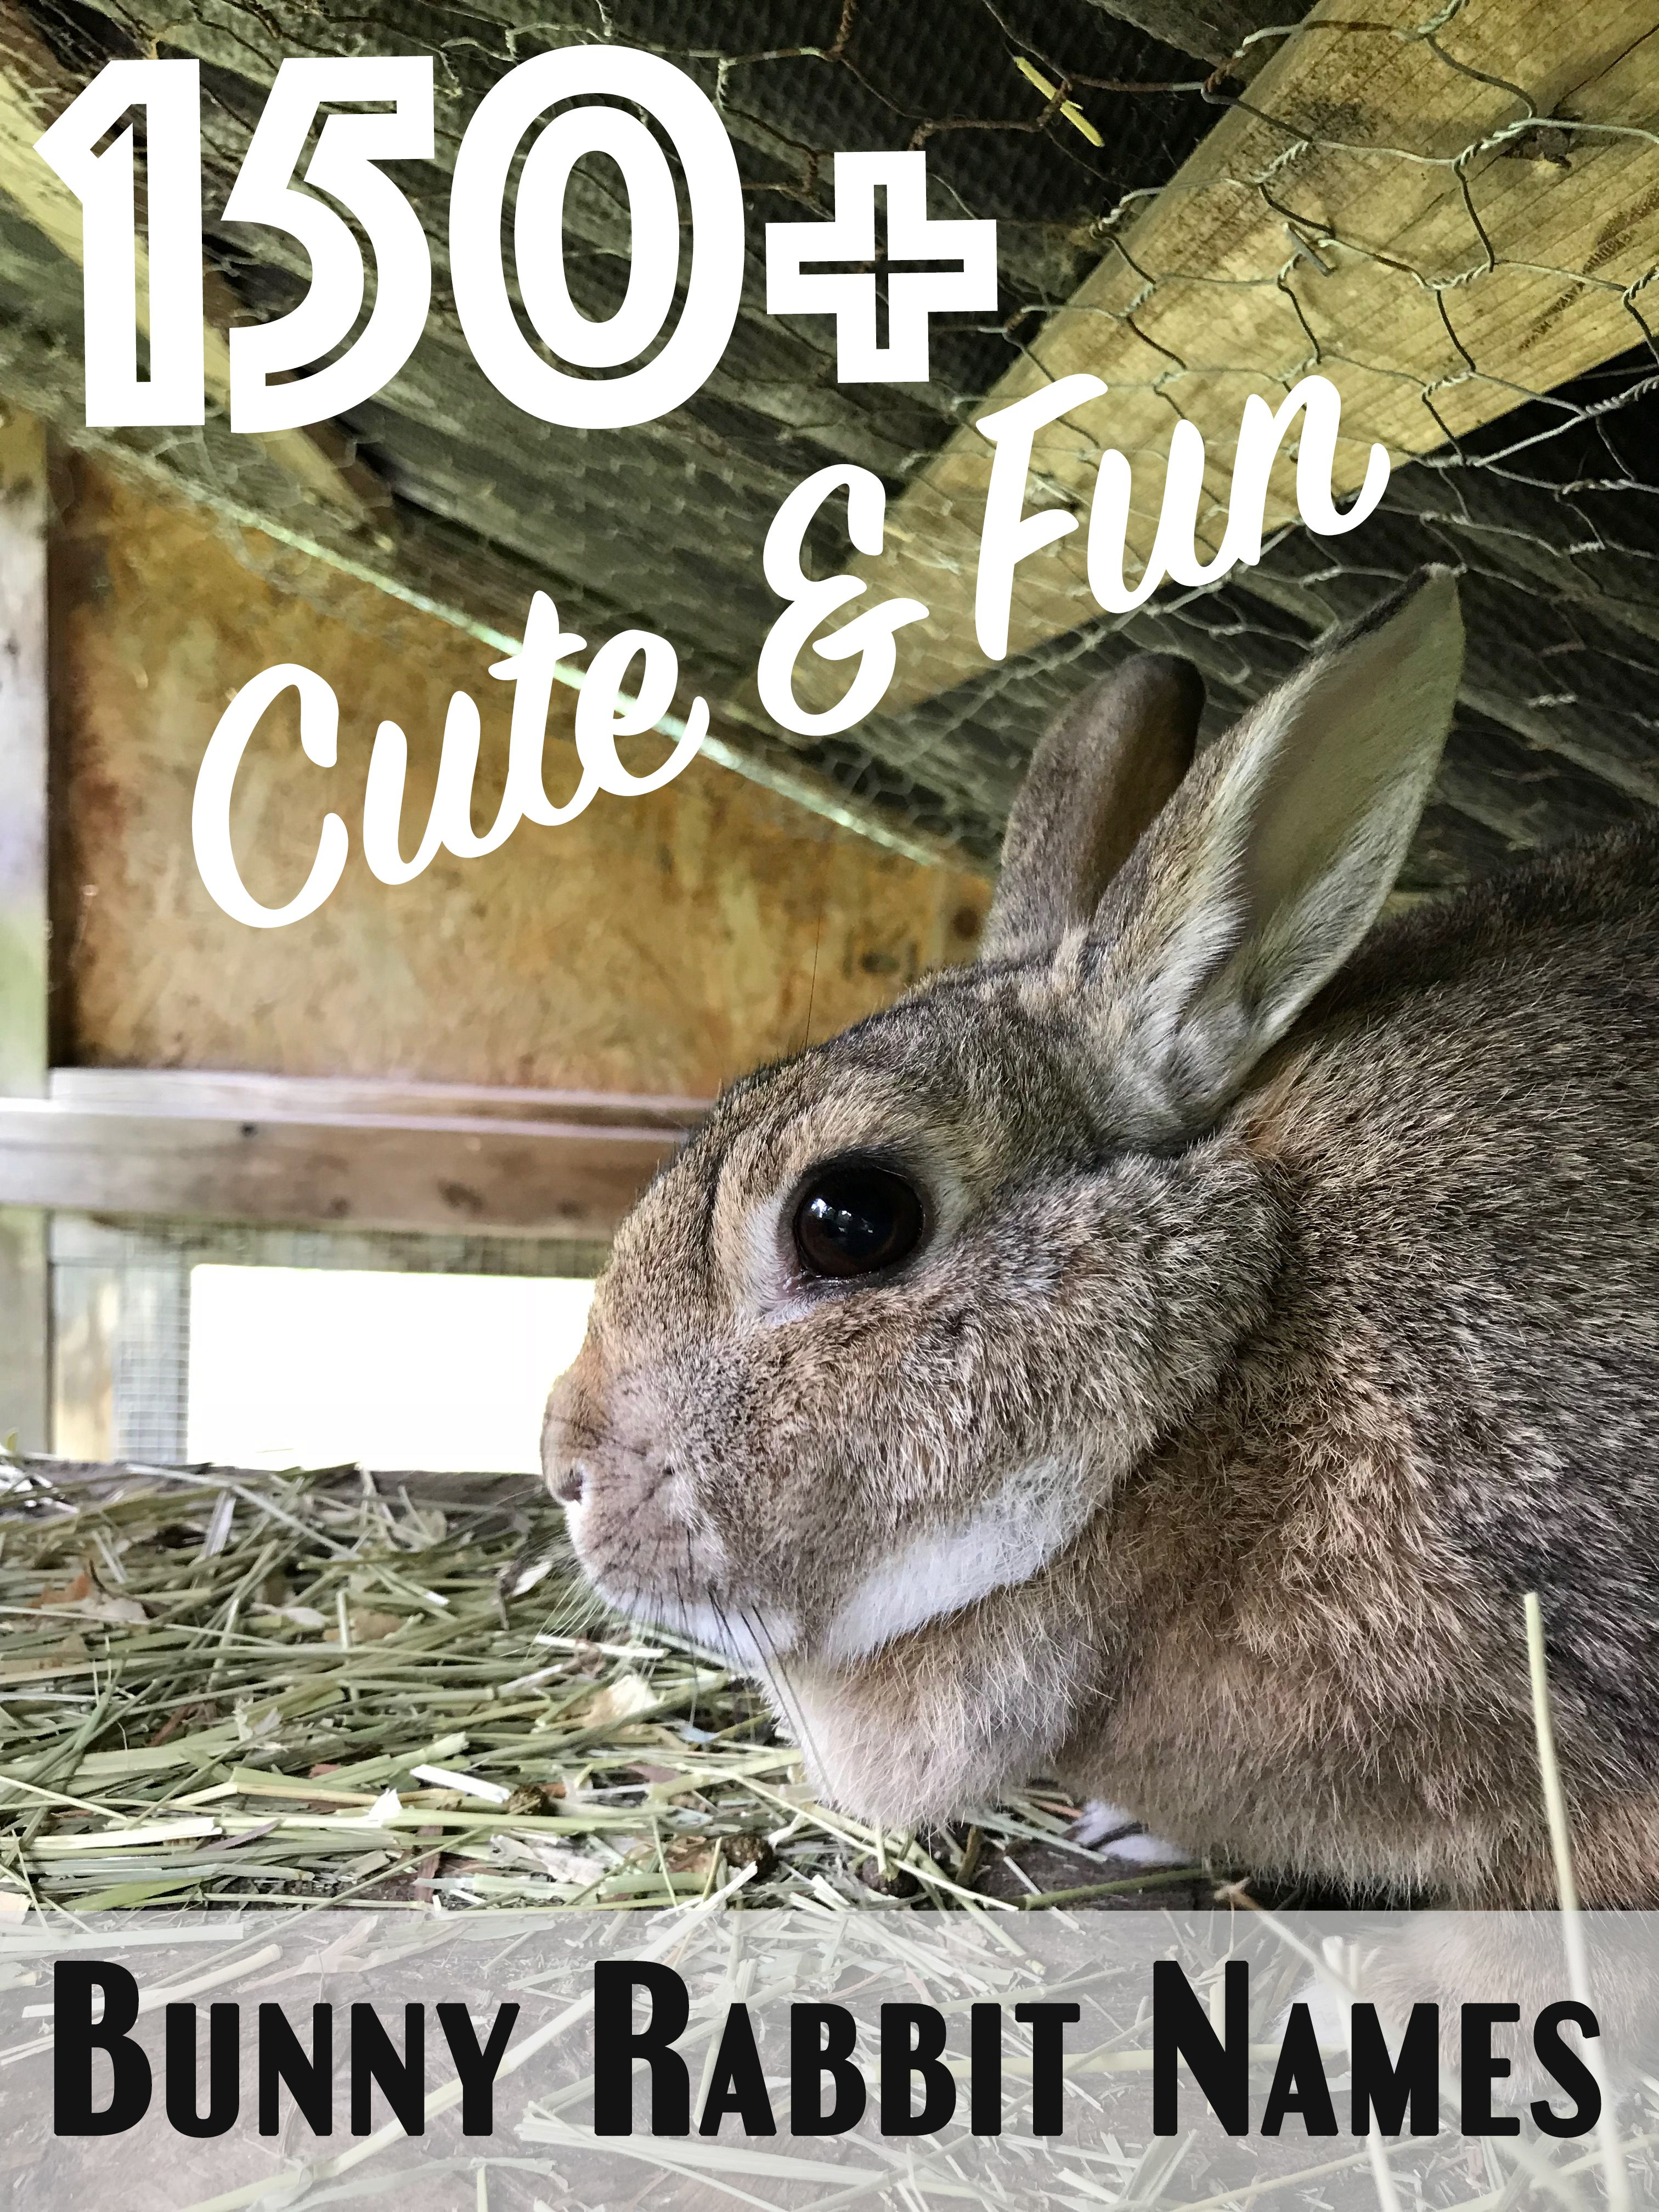 150 Cute And Funny Bunny Rabbit Names Rabbit Names Female Rabbit Names Cute Pet Names